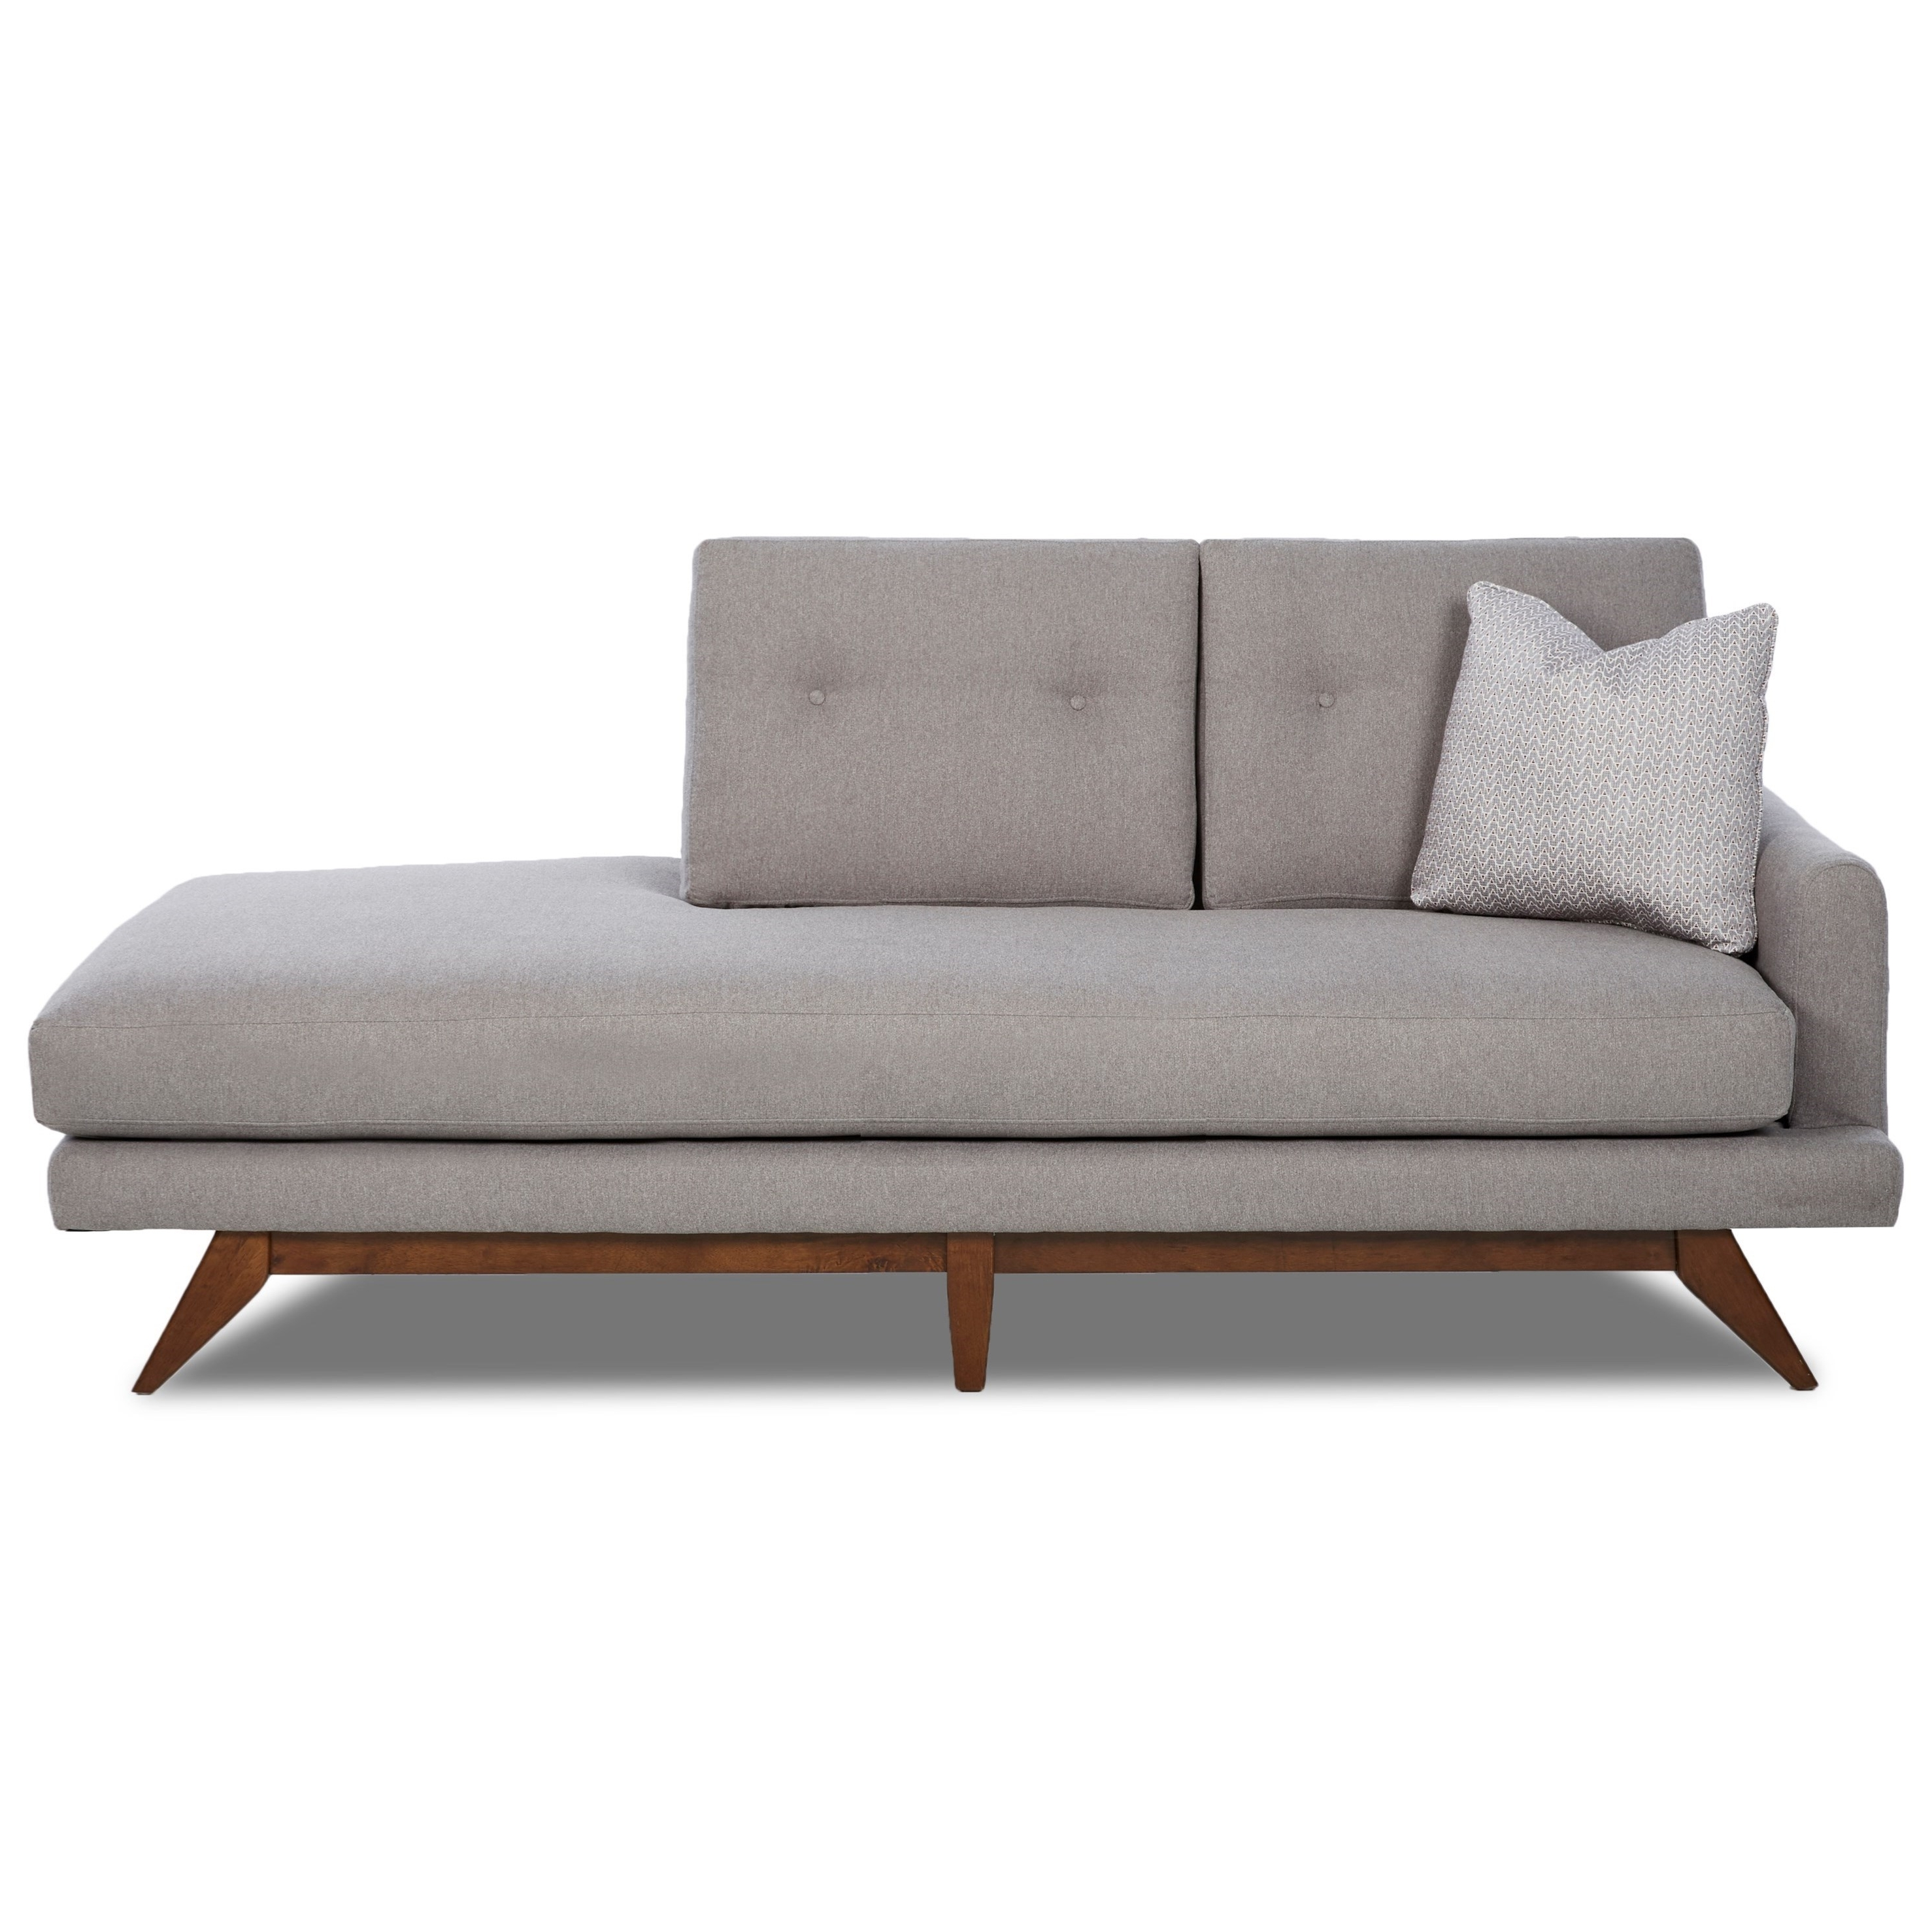 2018 Right Arm Chaise Lounges Inside Chase Furniture (View 7 of 15)